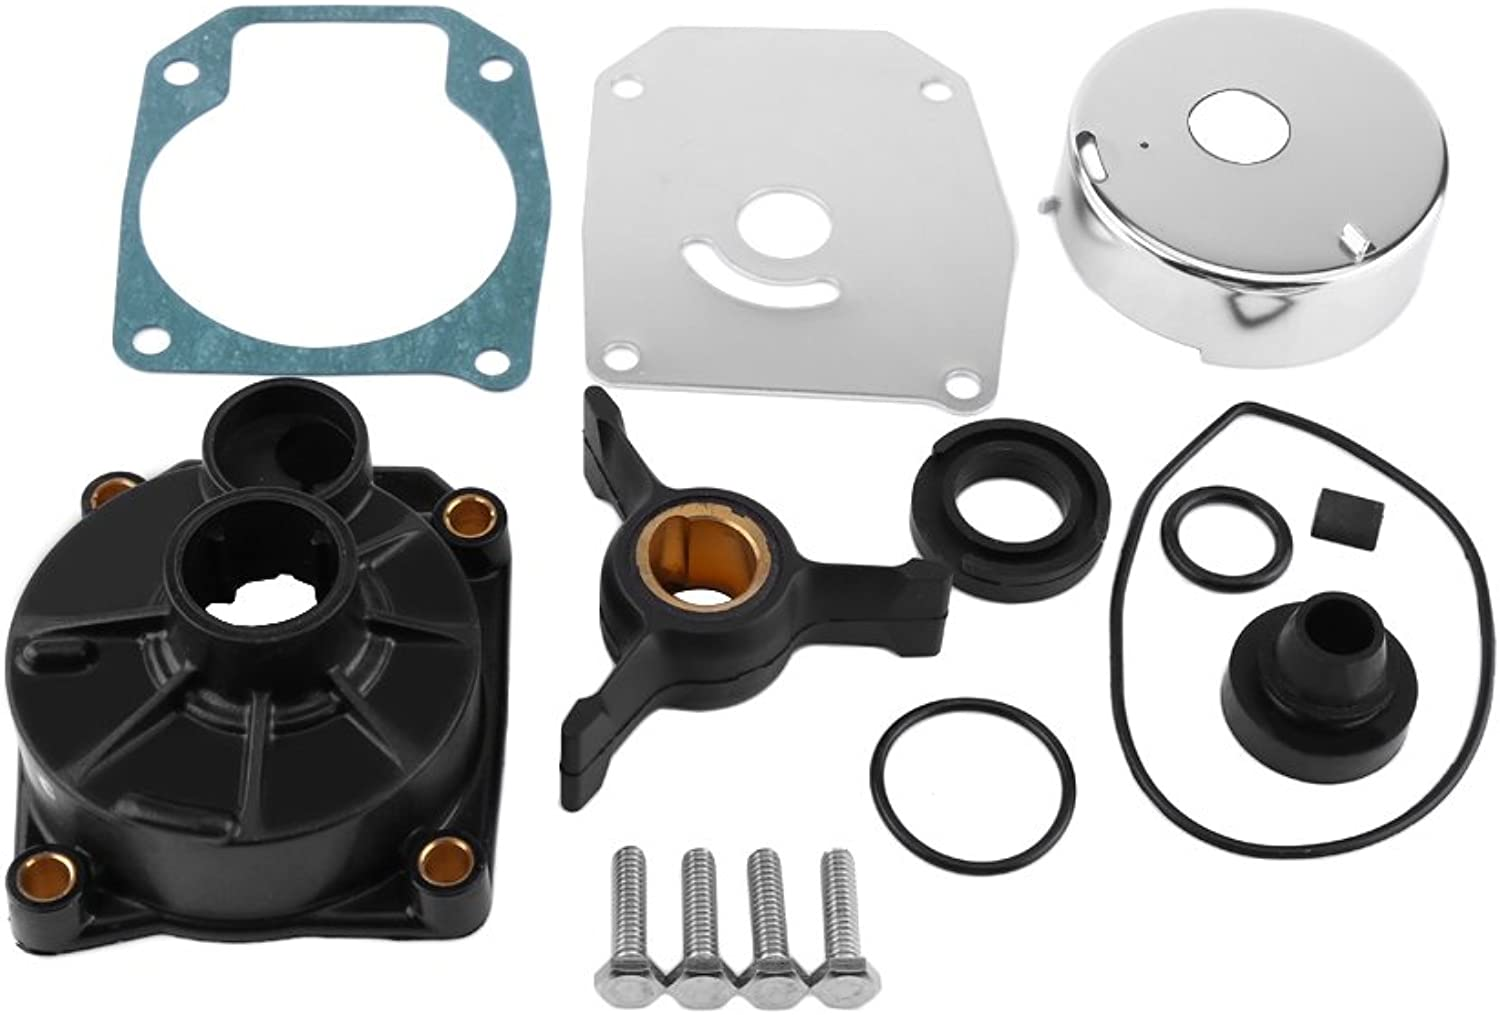 Water Pump Impeller Repair Kit Outboard Water Pump Rebuild Kit for Johnson Evinrude 40 48 50 HP Outboard Motors